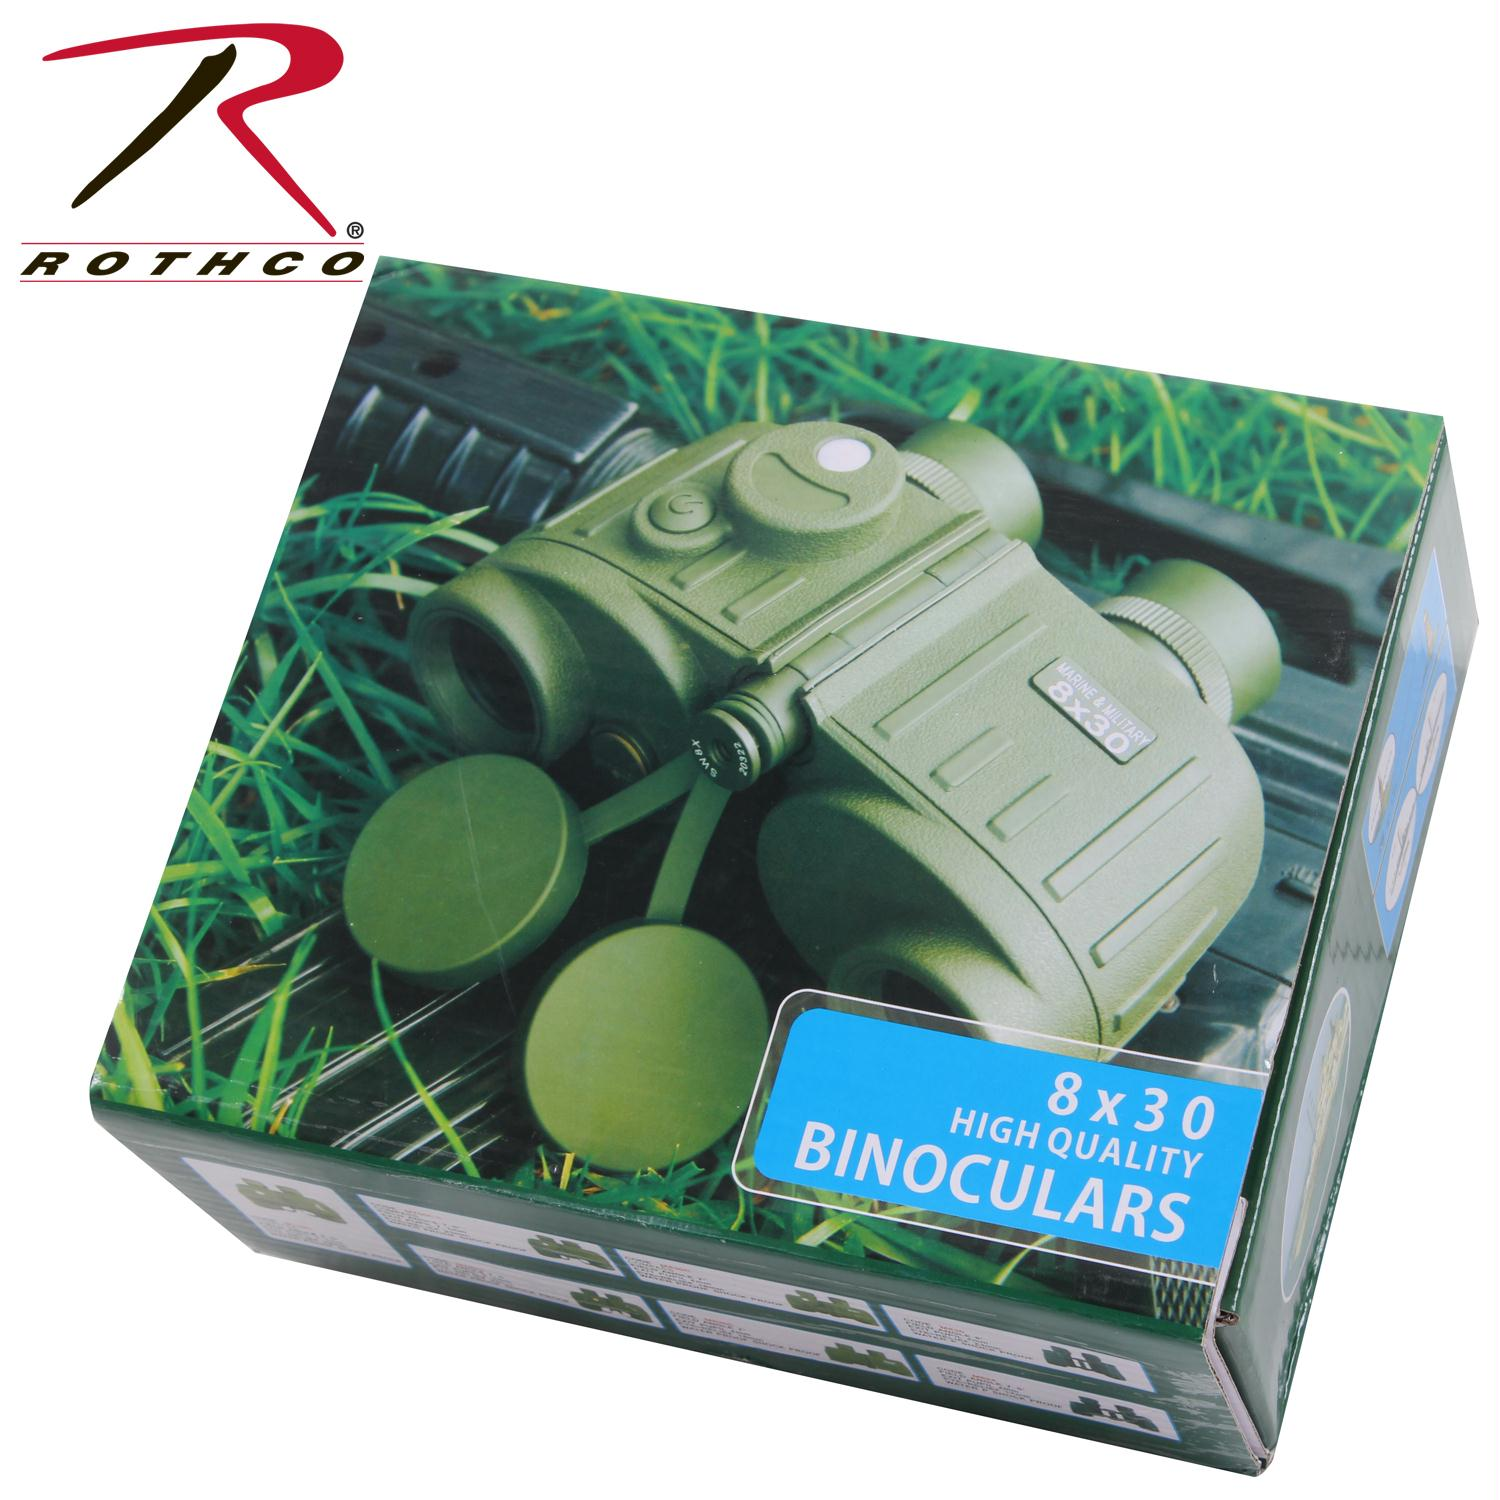 Rothco Military Style Tactical Binoculars 8 X 30